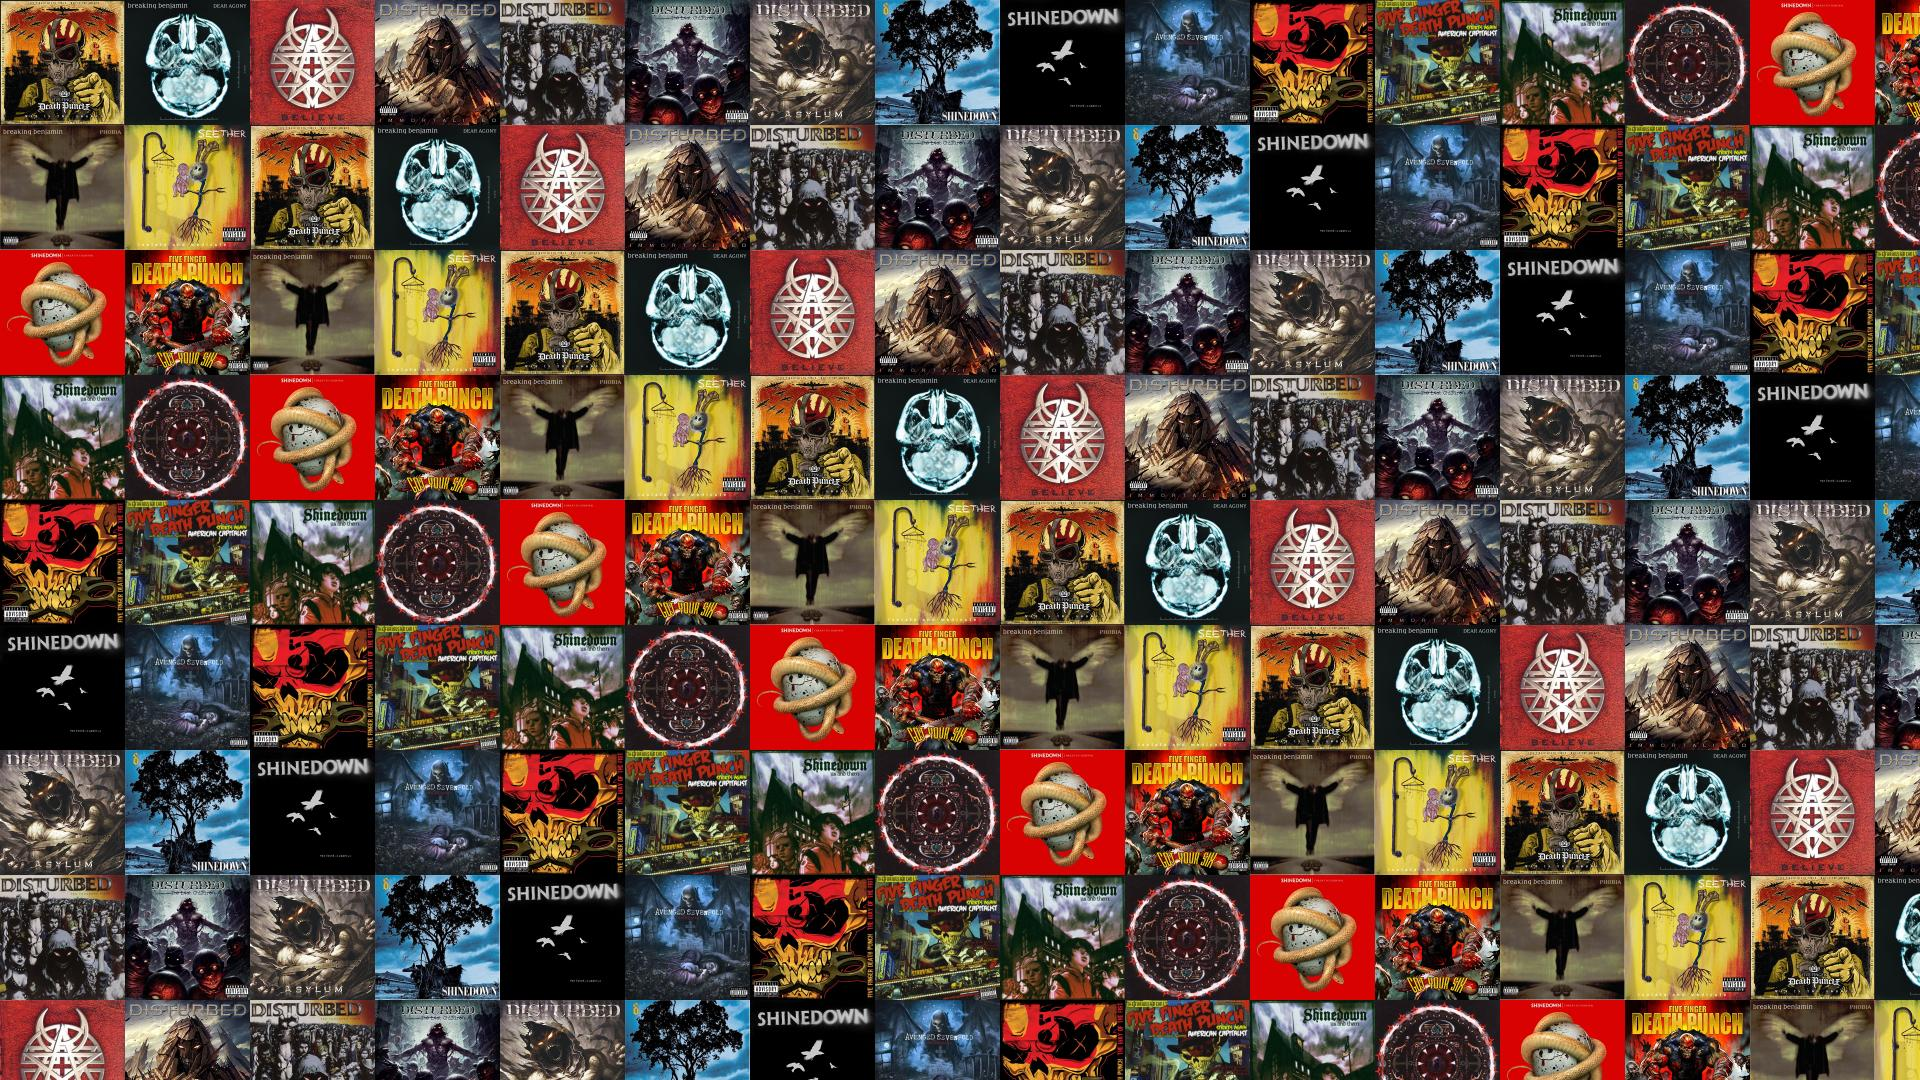 Download This Free Wallpaper With Images Of Five Finger Death Punch War Is The Answer Breaking Benjamin Dear Agony Disturbed Beleive